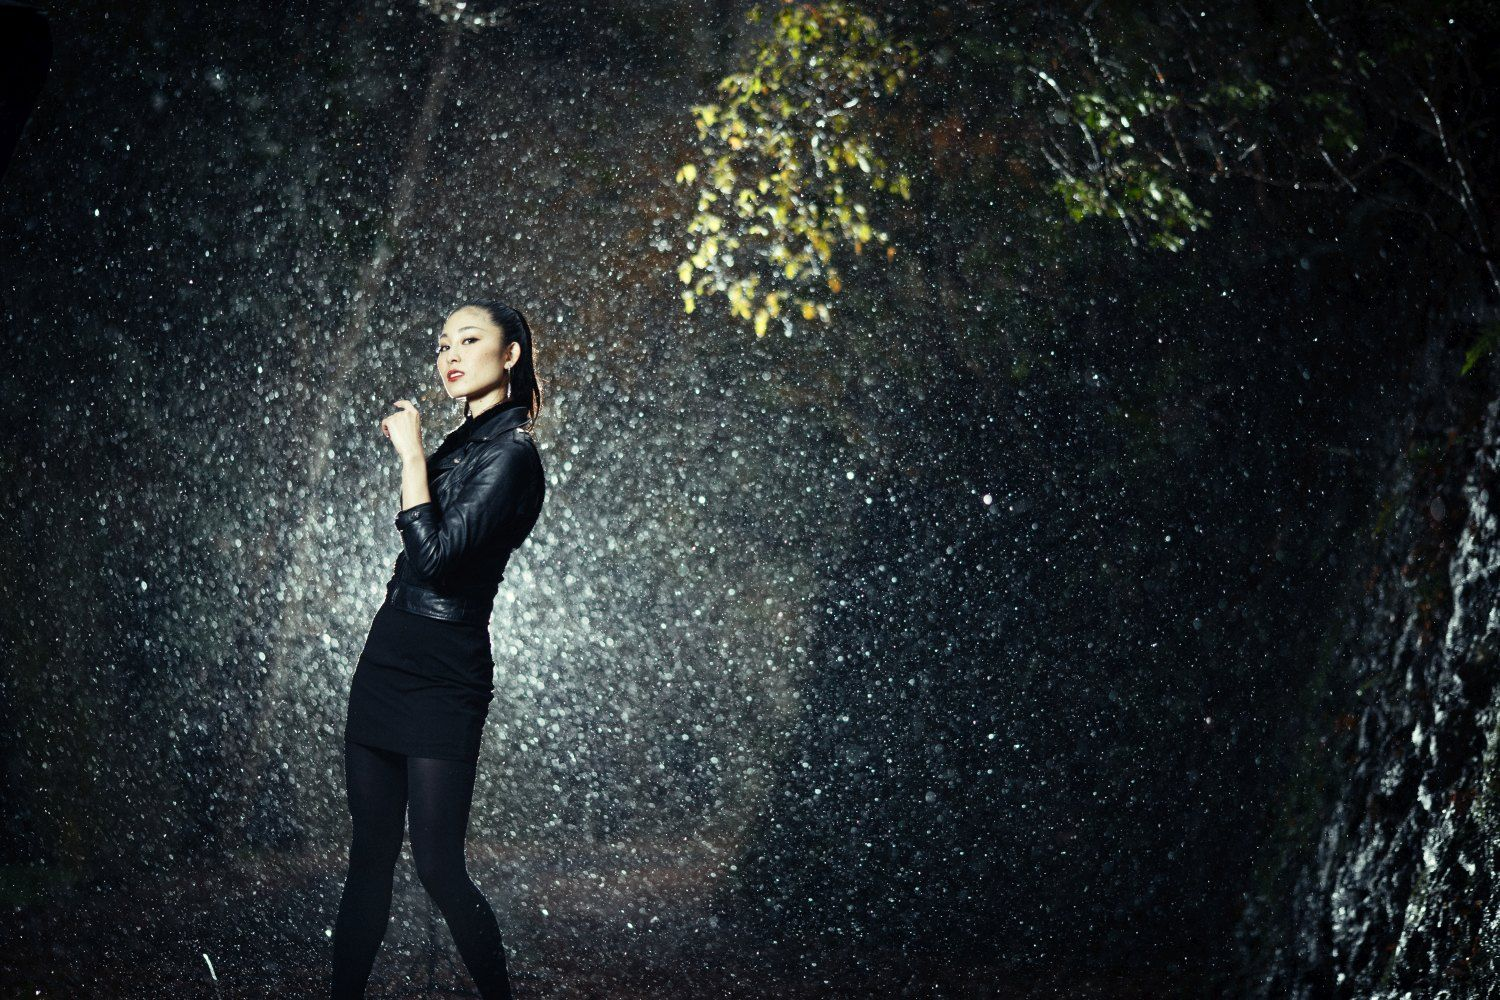 Pouring rain is your shot at spectacular portraits